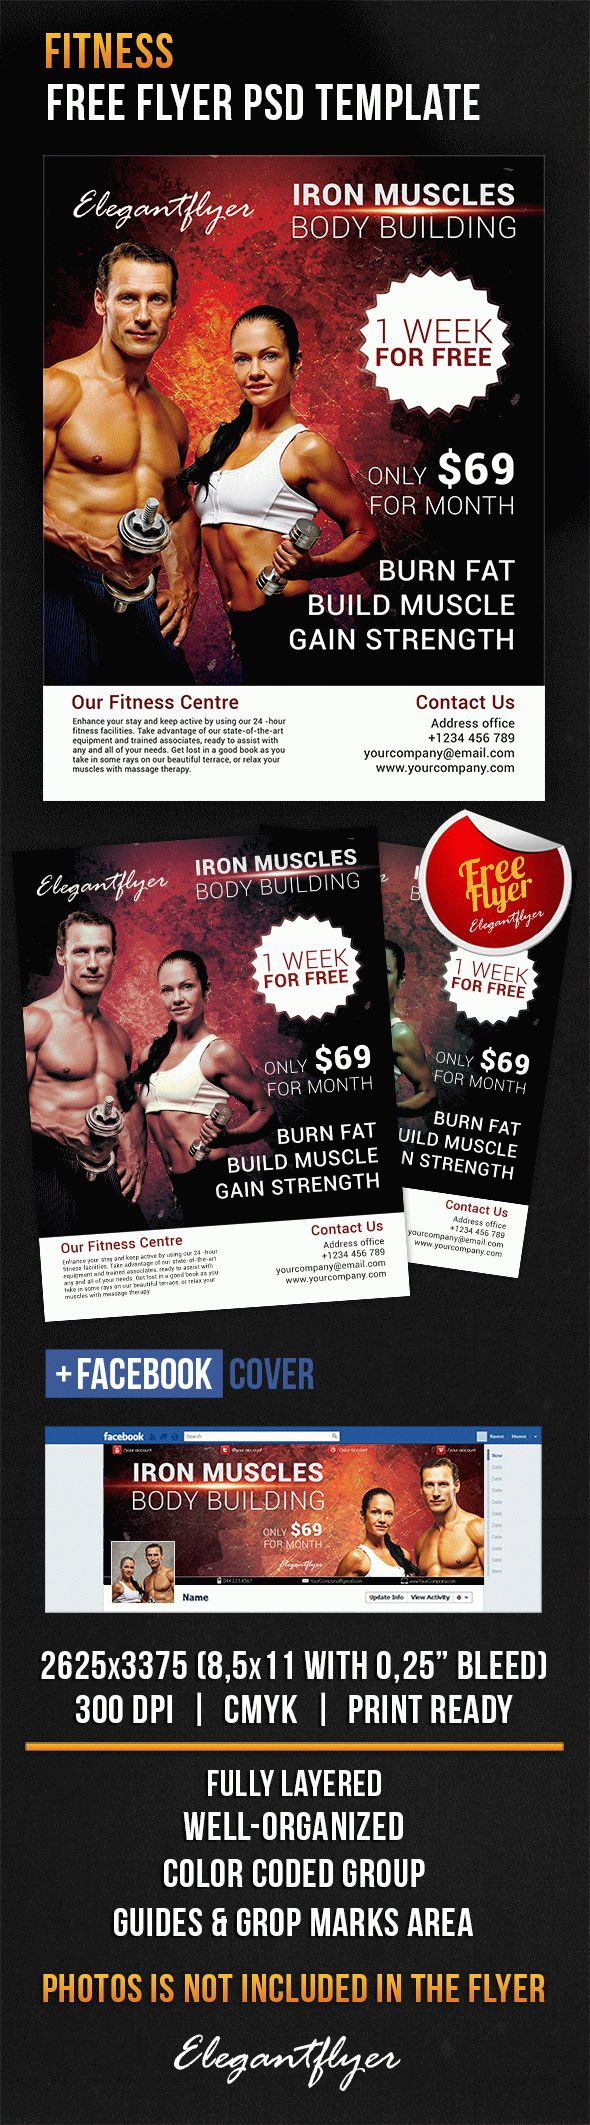 fitness flyer free psd flyer template by elegantflyer. Black Bedroom Furniture Sets. Home Design Ideas